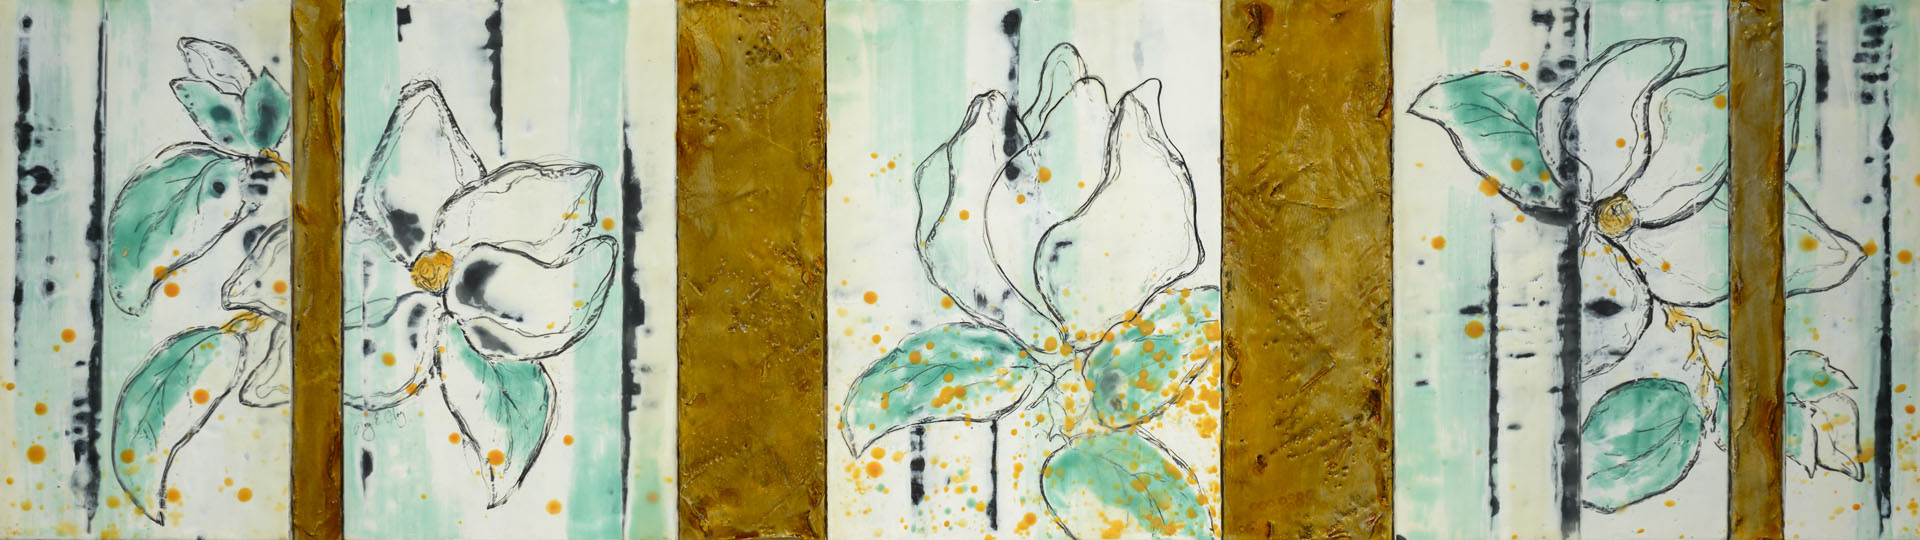 Magnolia XI_Encaustic & Mixed Media_17x56_2015_$2,800